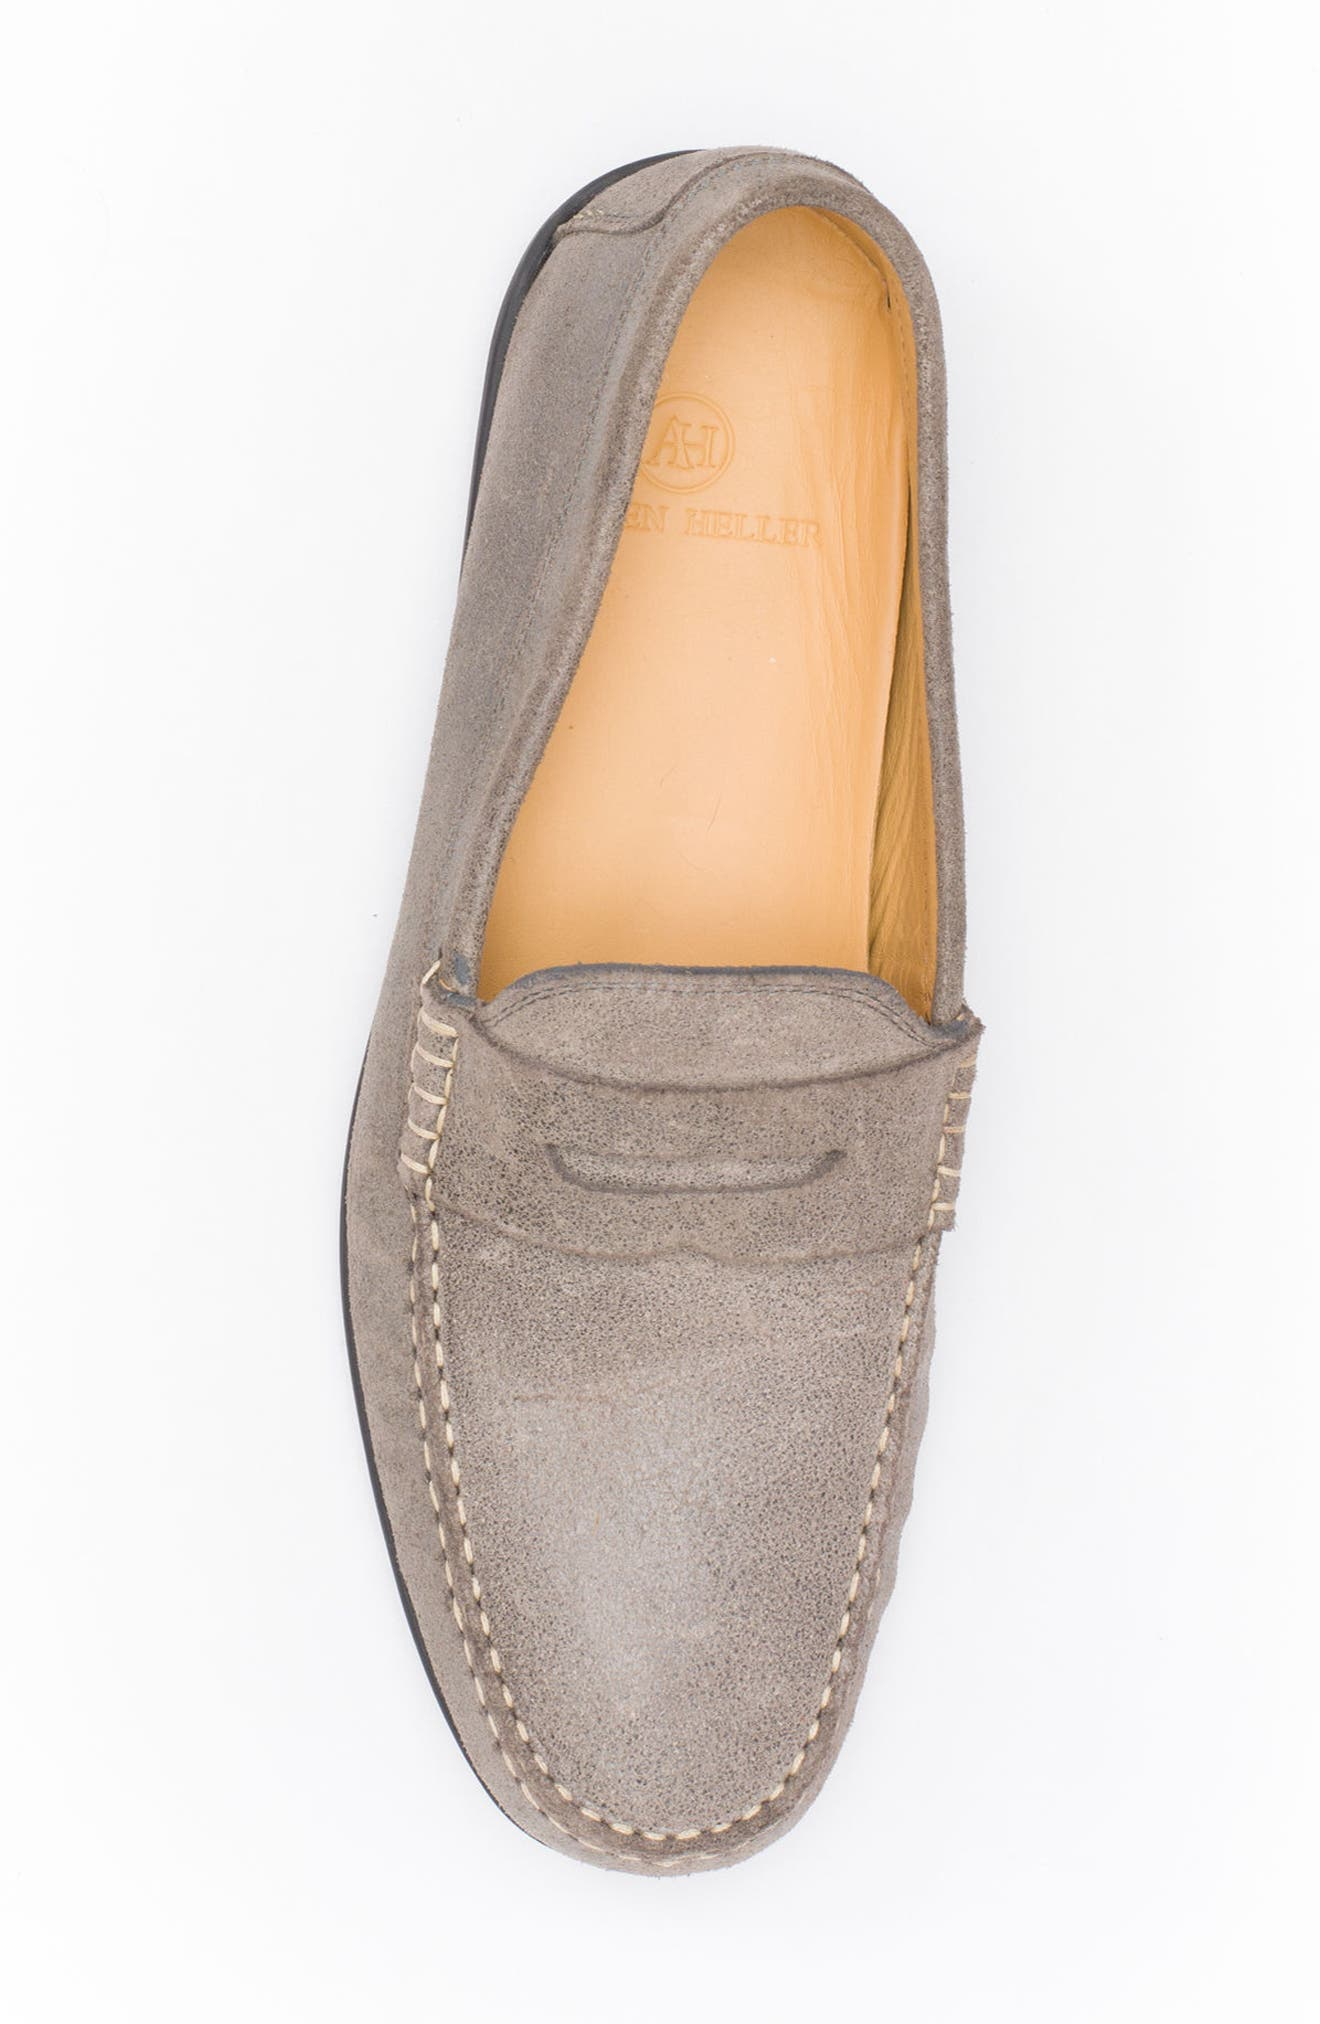 Barretts Penny Loafer,                             Alternate thumbnail 5, color,                             GREY